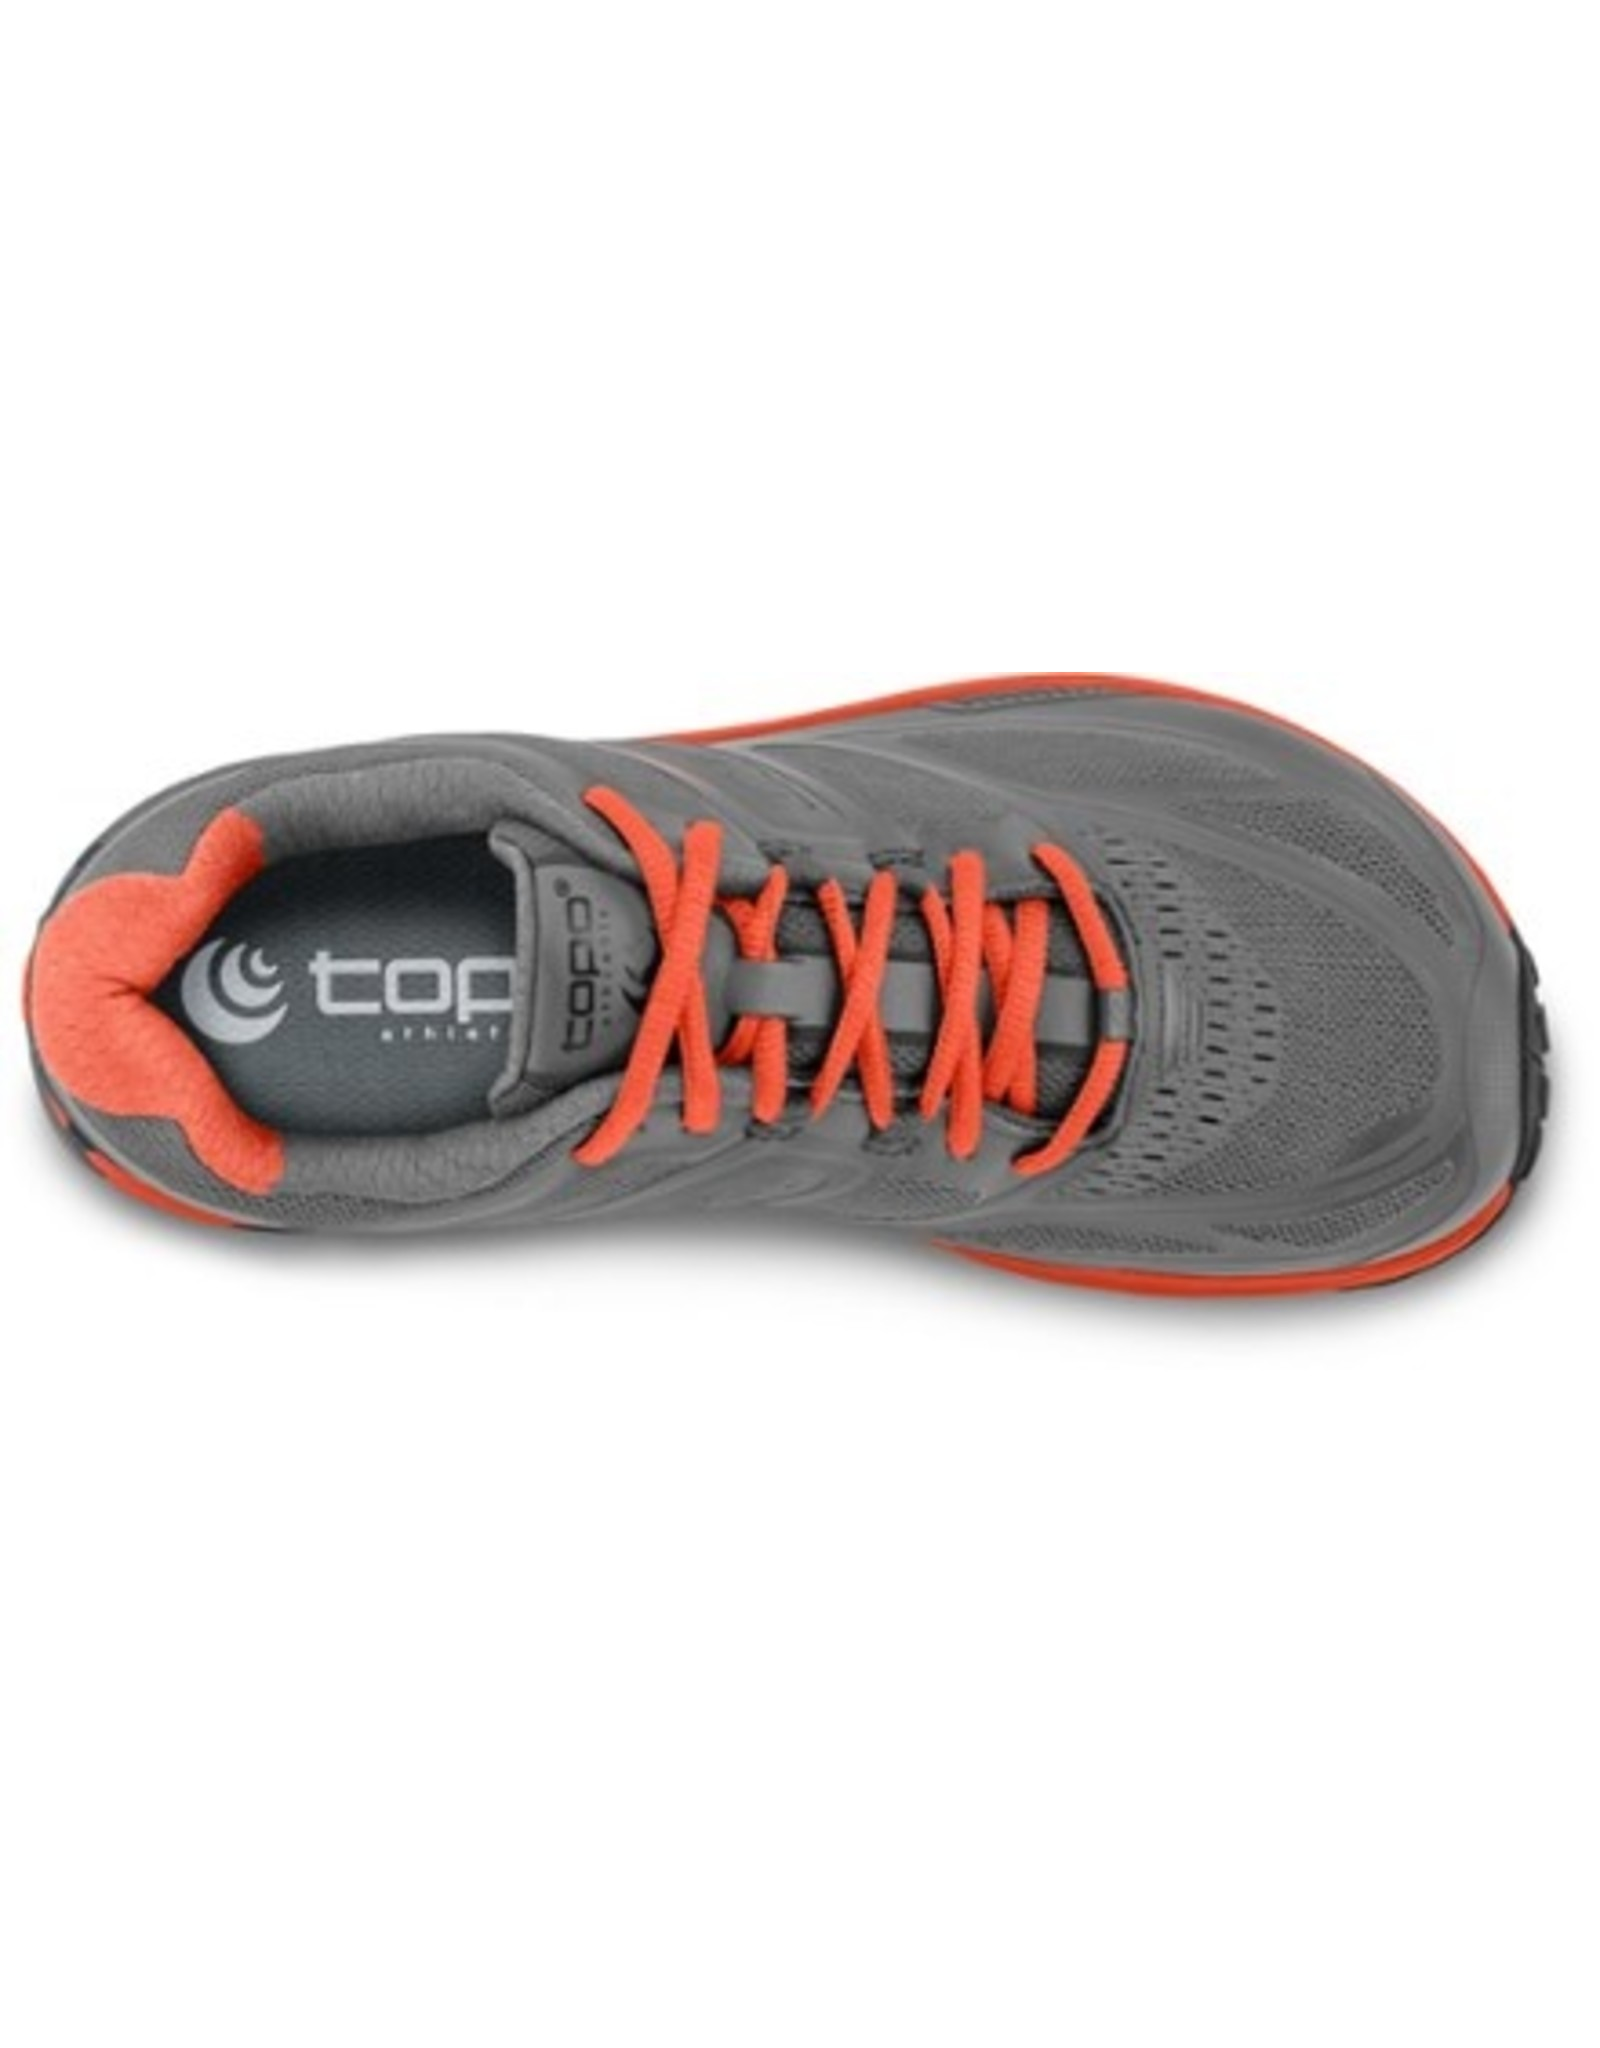 Topo Athletic  Topo Athletic Ultraventure Trail-Running Shoes -  Grey/Tangerine, Women's, Size 8.5